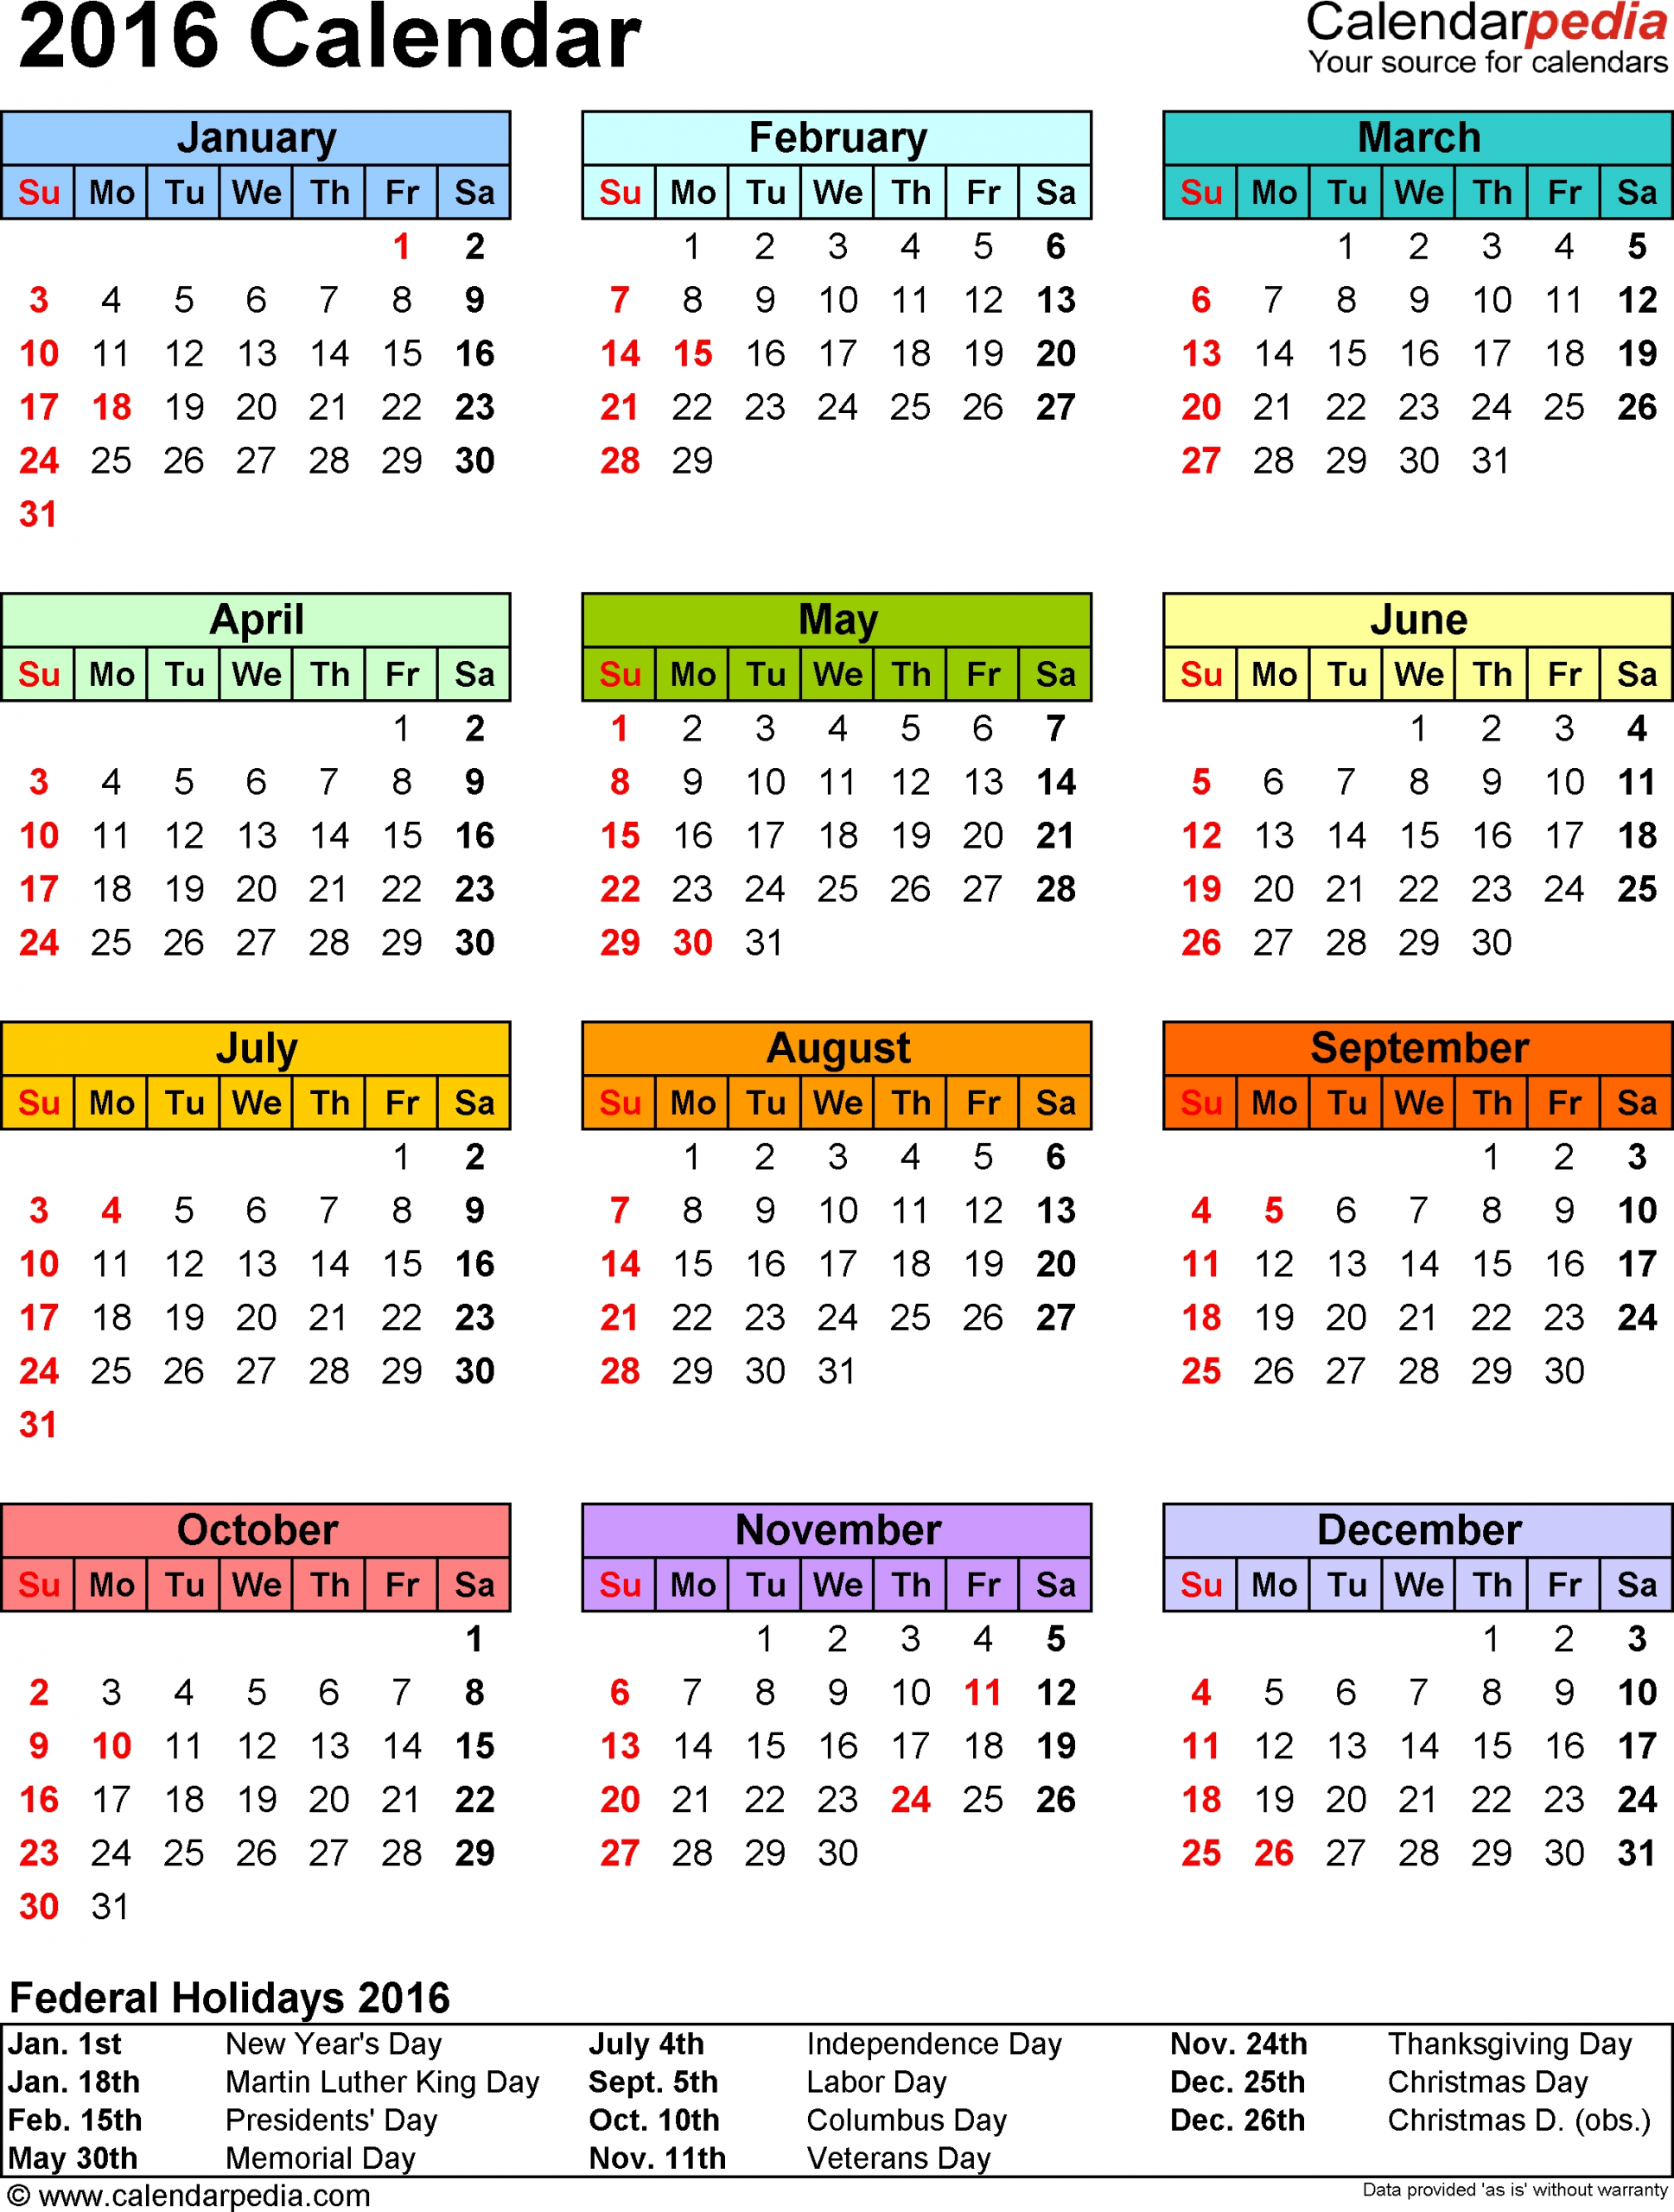 template 9: 2016 calendar for excel, year at a glance, 1